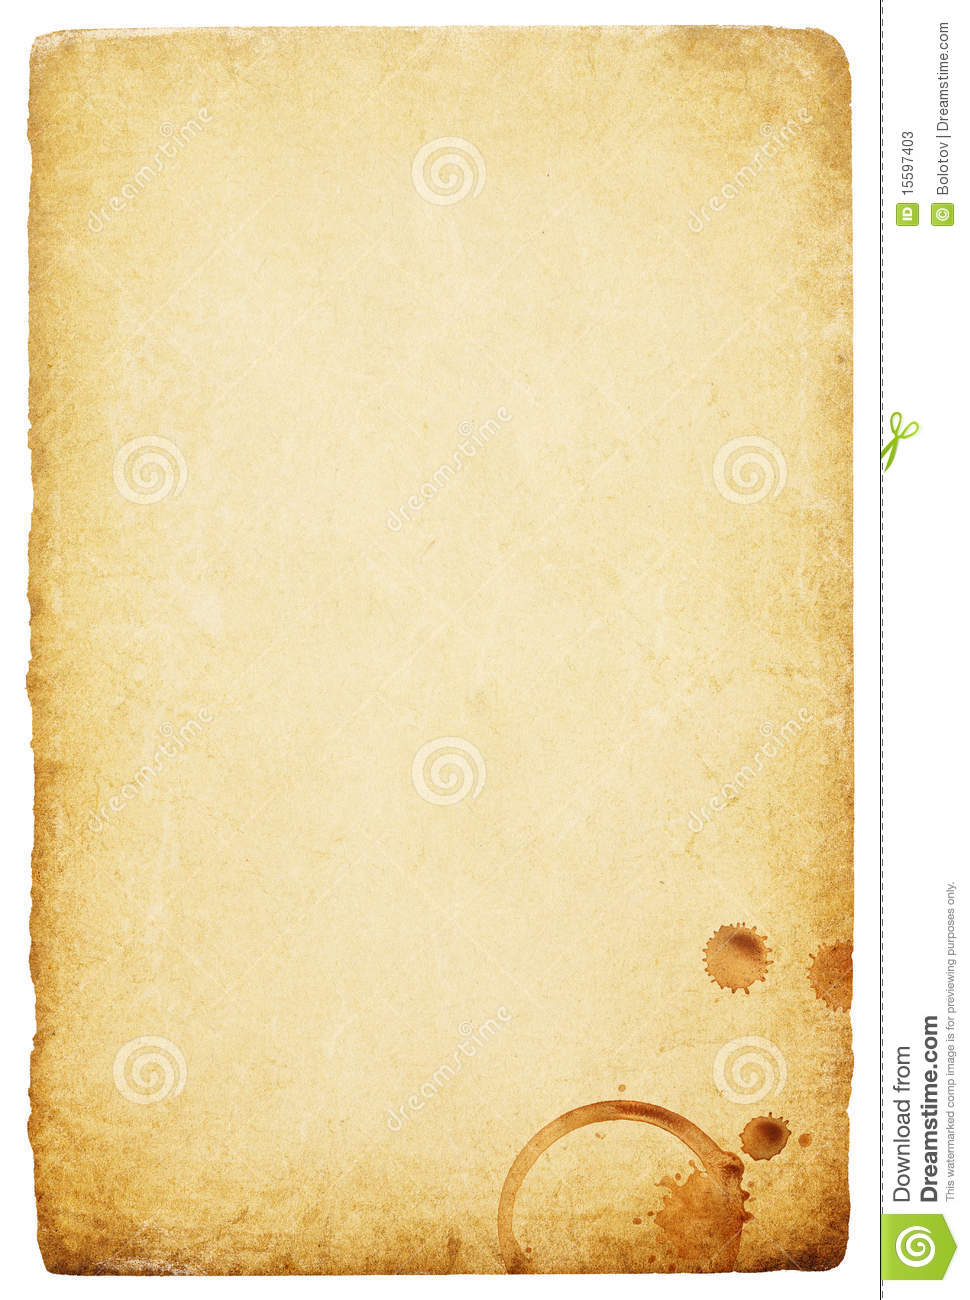 vintage paper with coffee rings stain stock photos